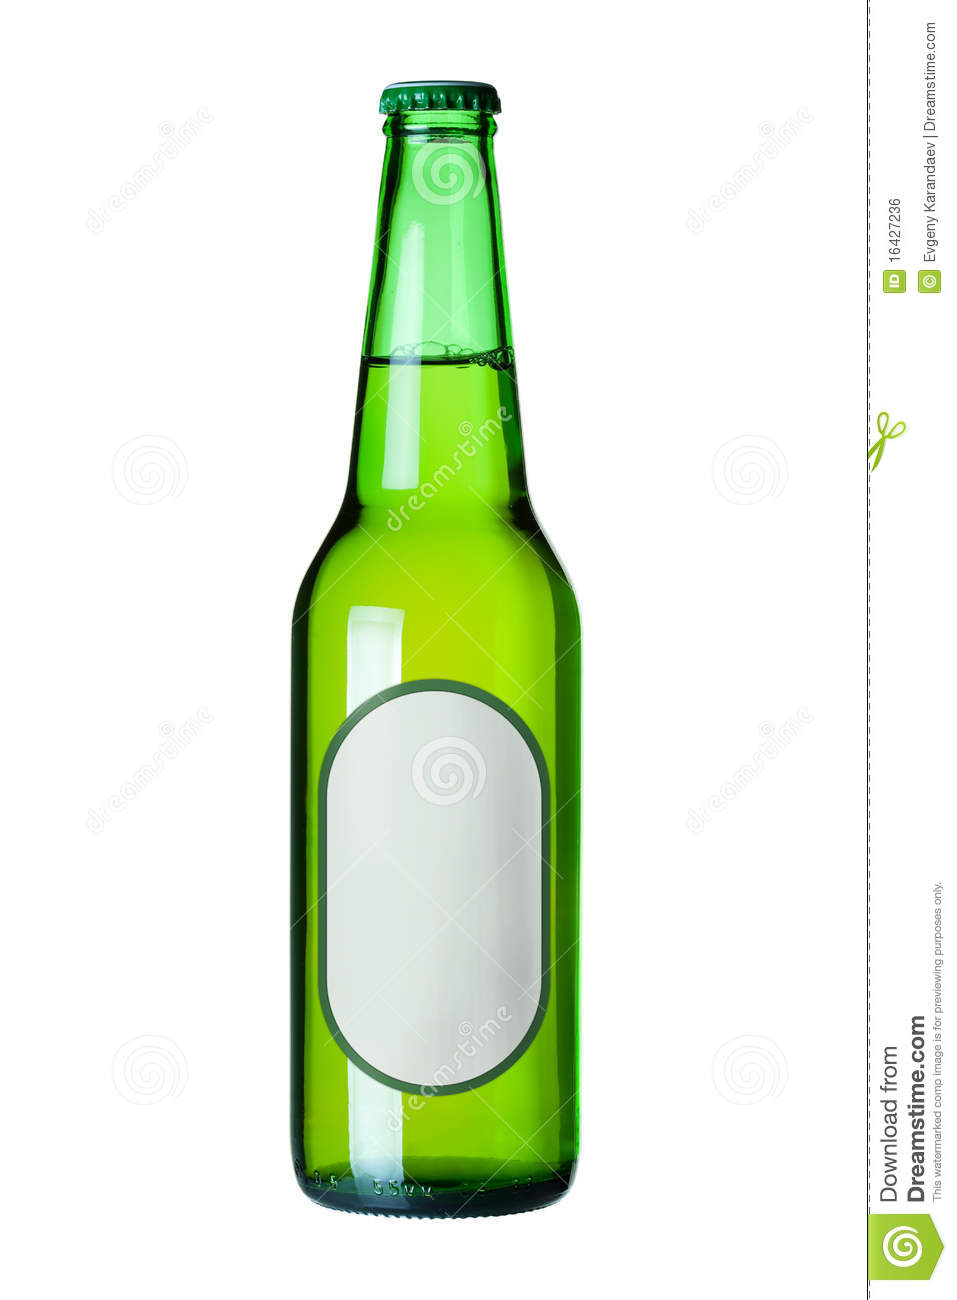 Lager beer in green bottle with blank label royalty free stock image